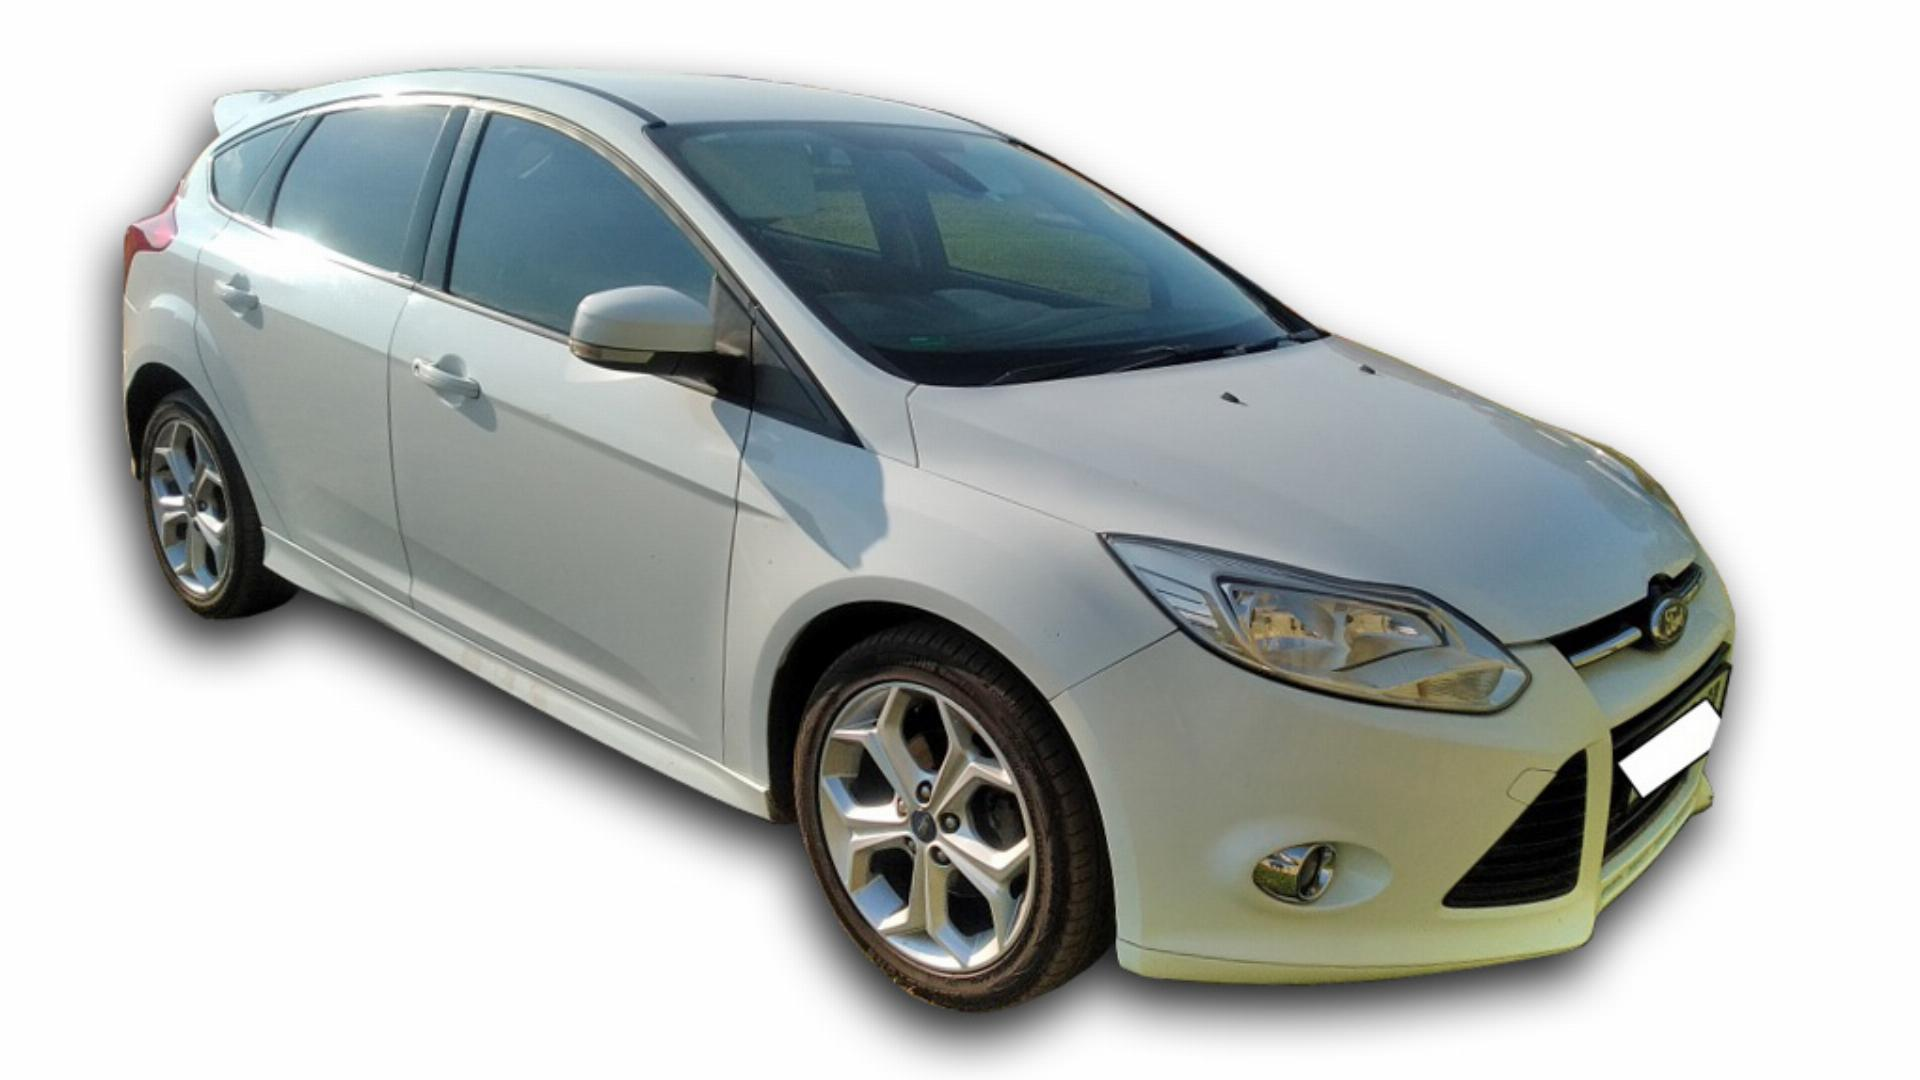 Ford Focus 2.0 Gdi Trend